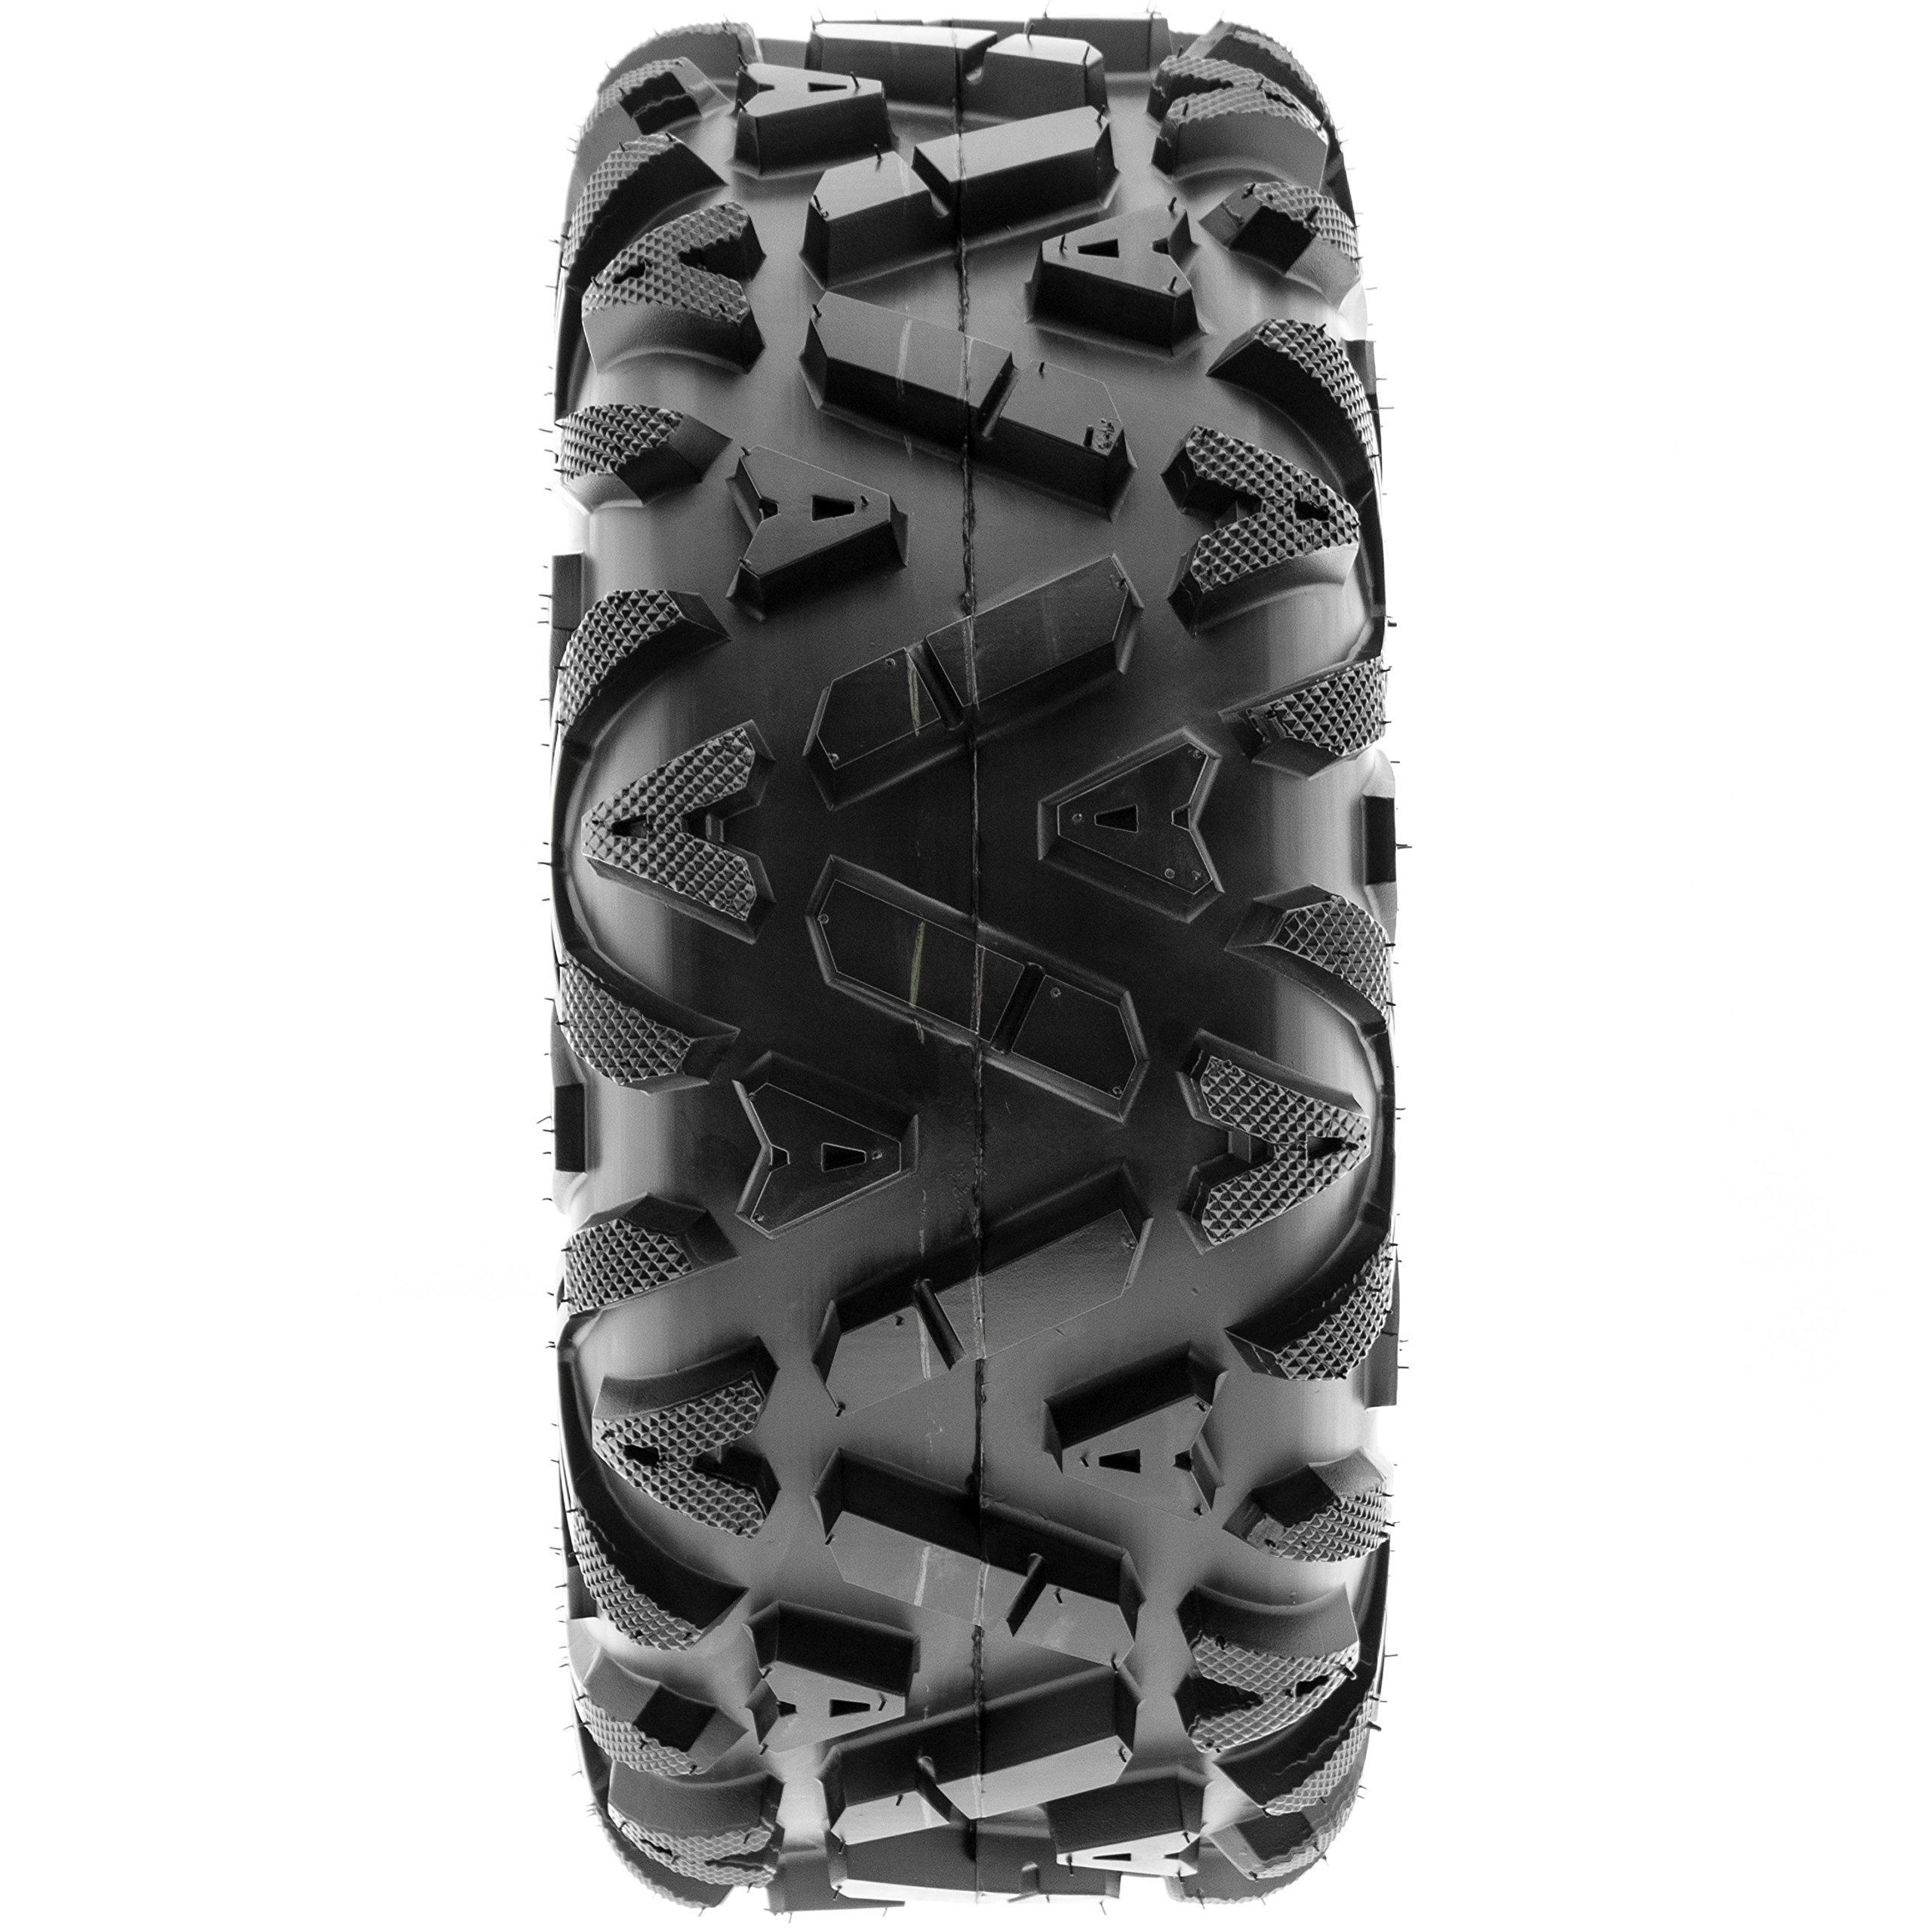 Pair of 2 SunF A033 Power.I AT 25x10-11 ATV UTV Off-Road Tires, All-Terrain, 6 PR, Tubeless by SUNF (Image #6)